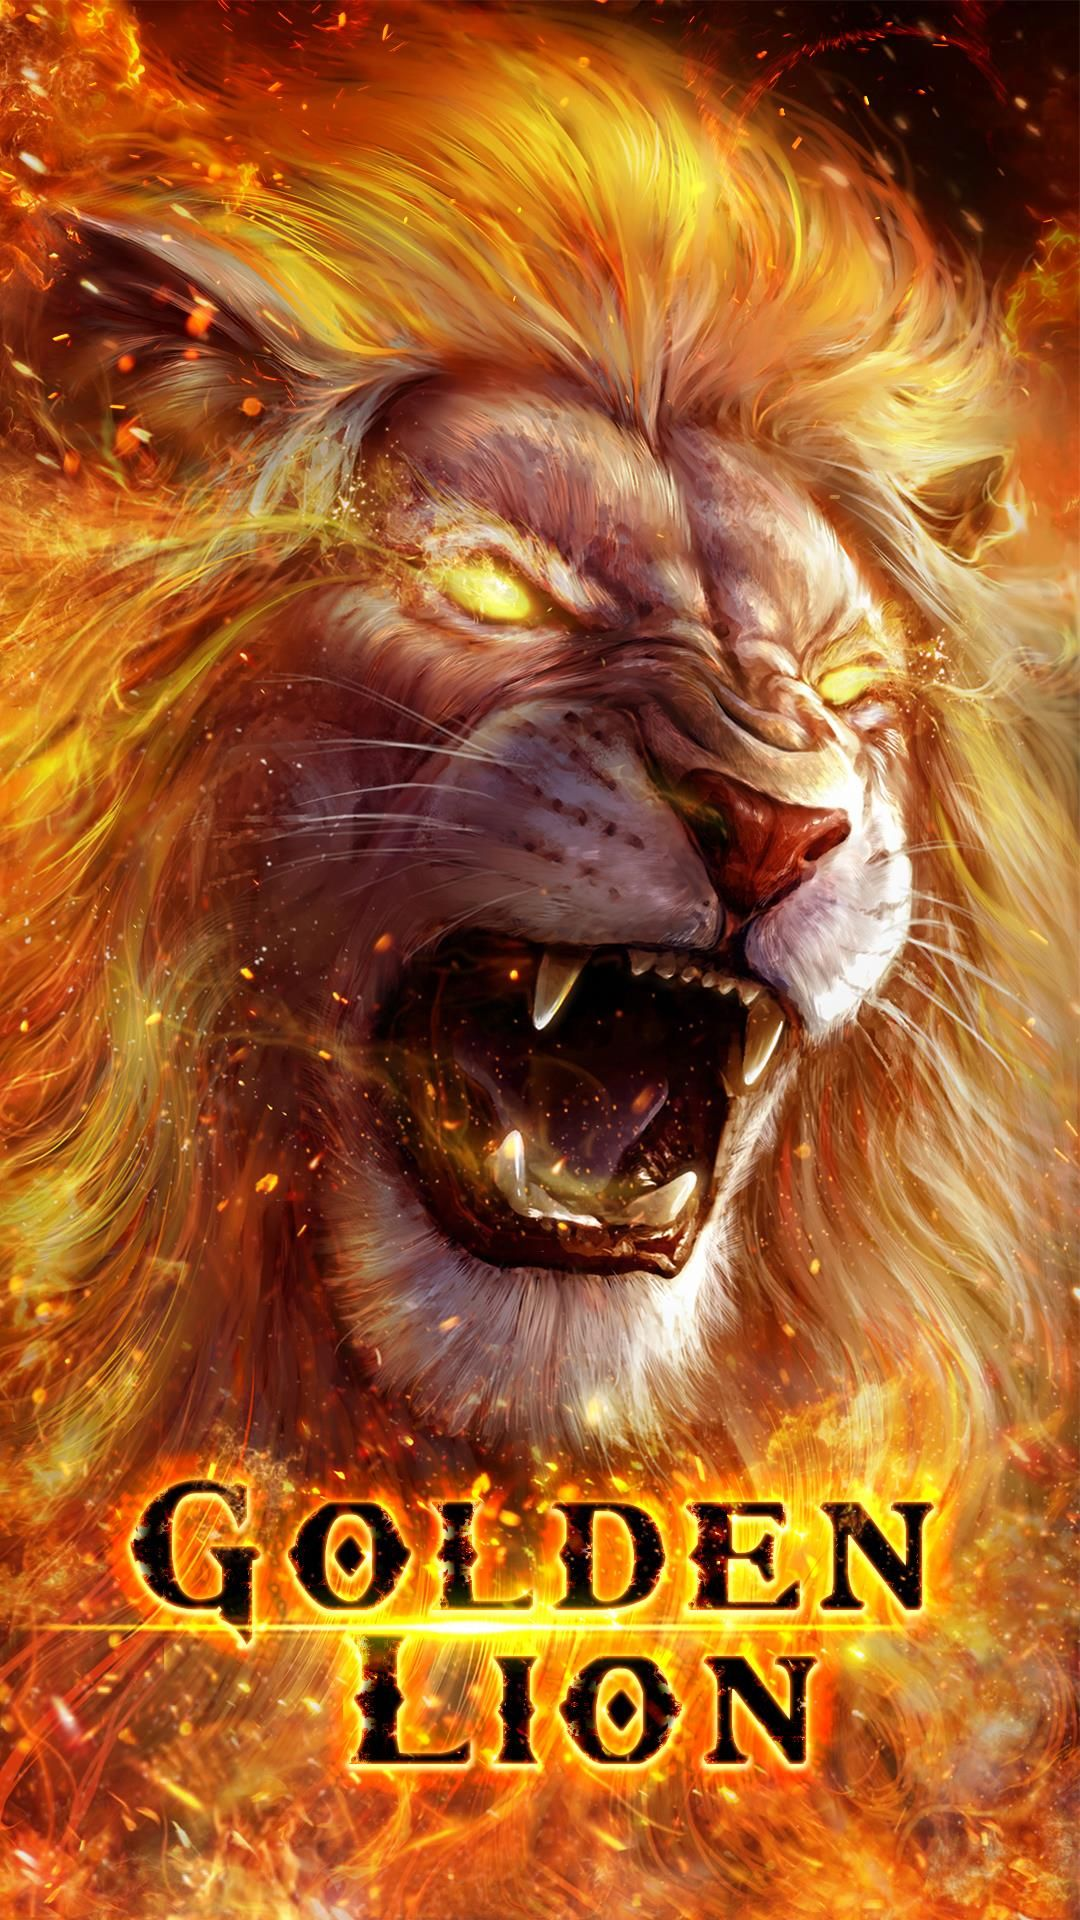 Golden lion live wallpaper! Lion live wallpaper